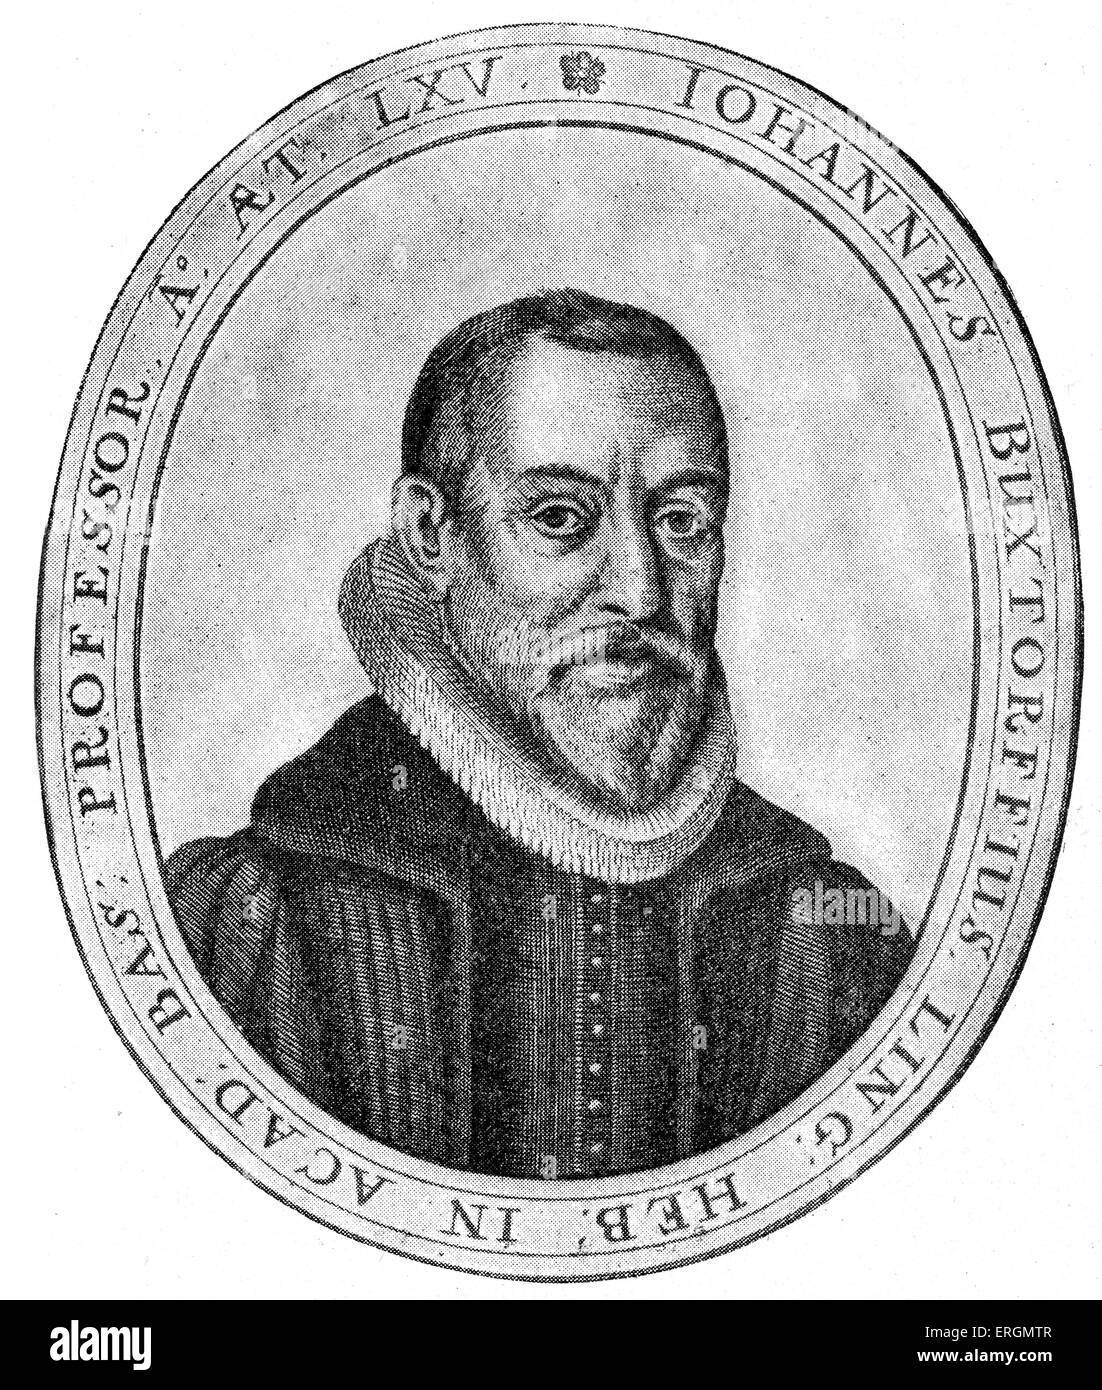 Johannes Buxtorf I (1564-1629) was a scholar of Hebrew and professor of Hebrew studies at Basel University, Switzerland, - Stock Image